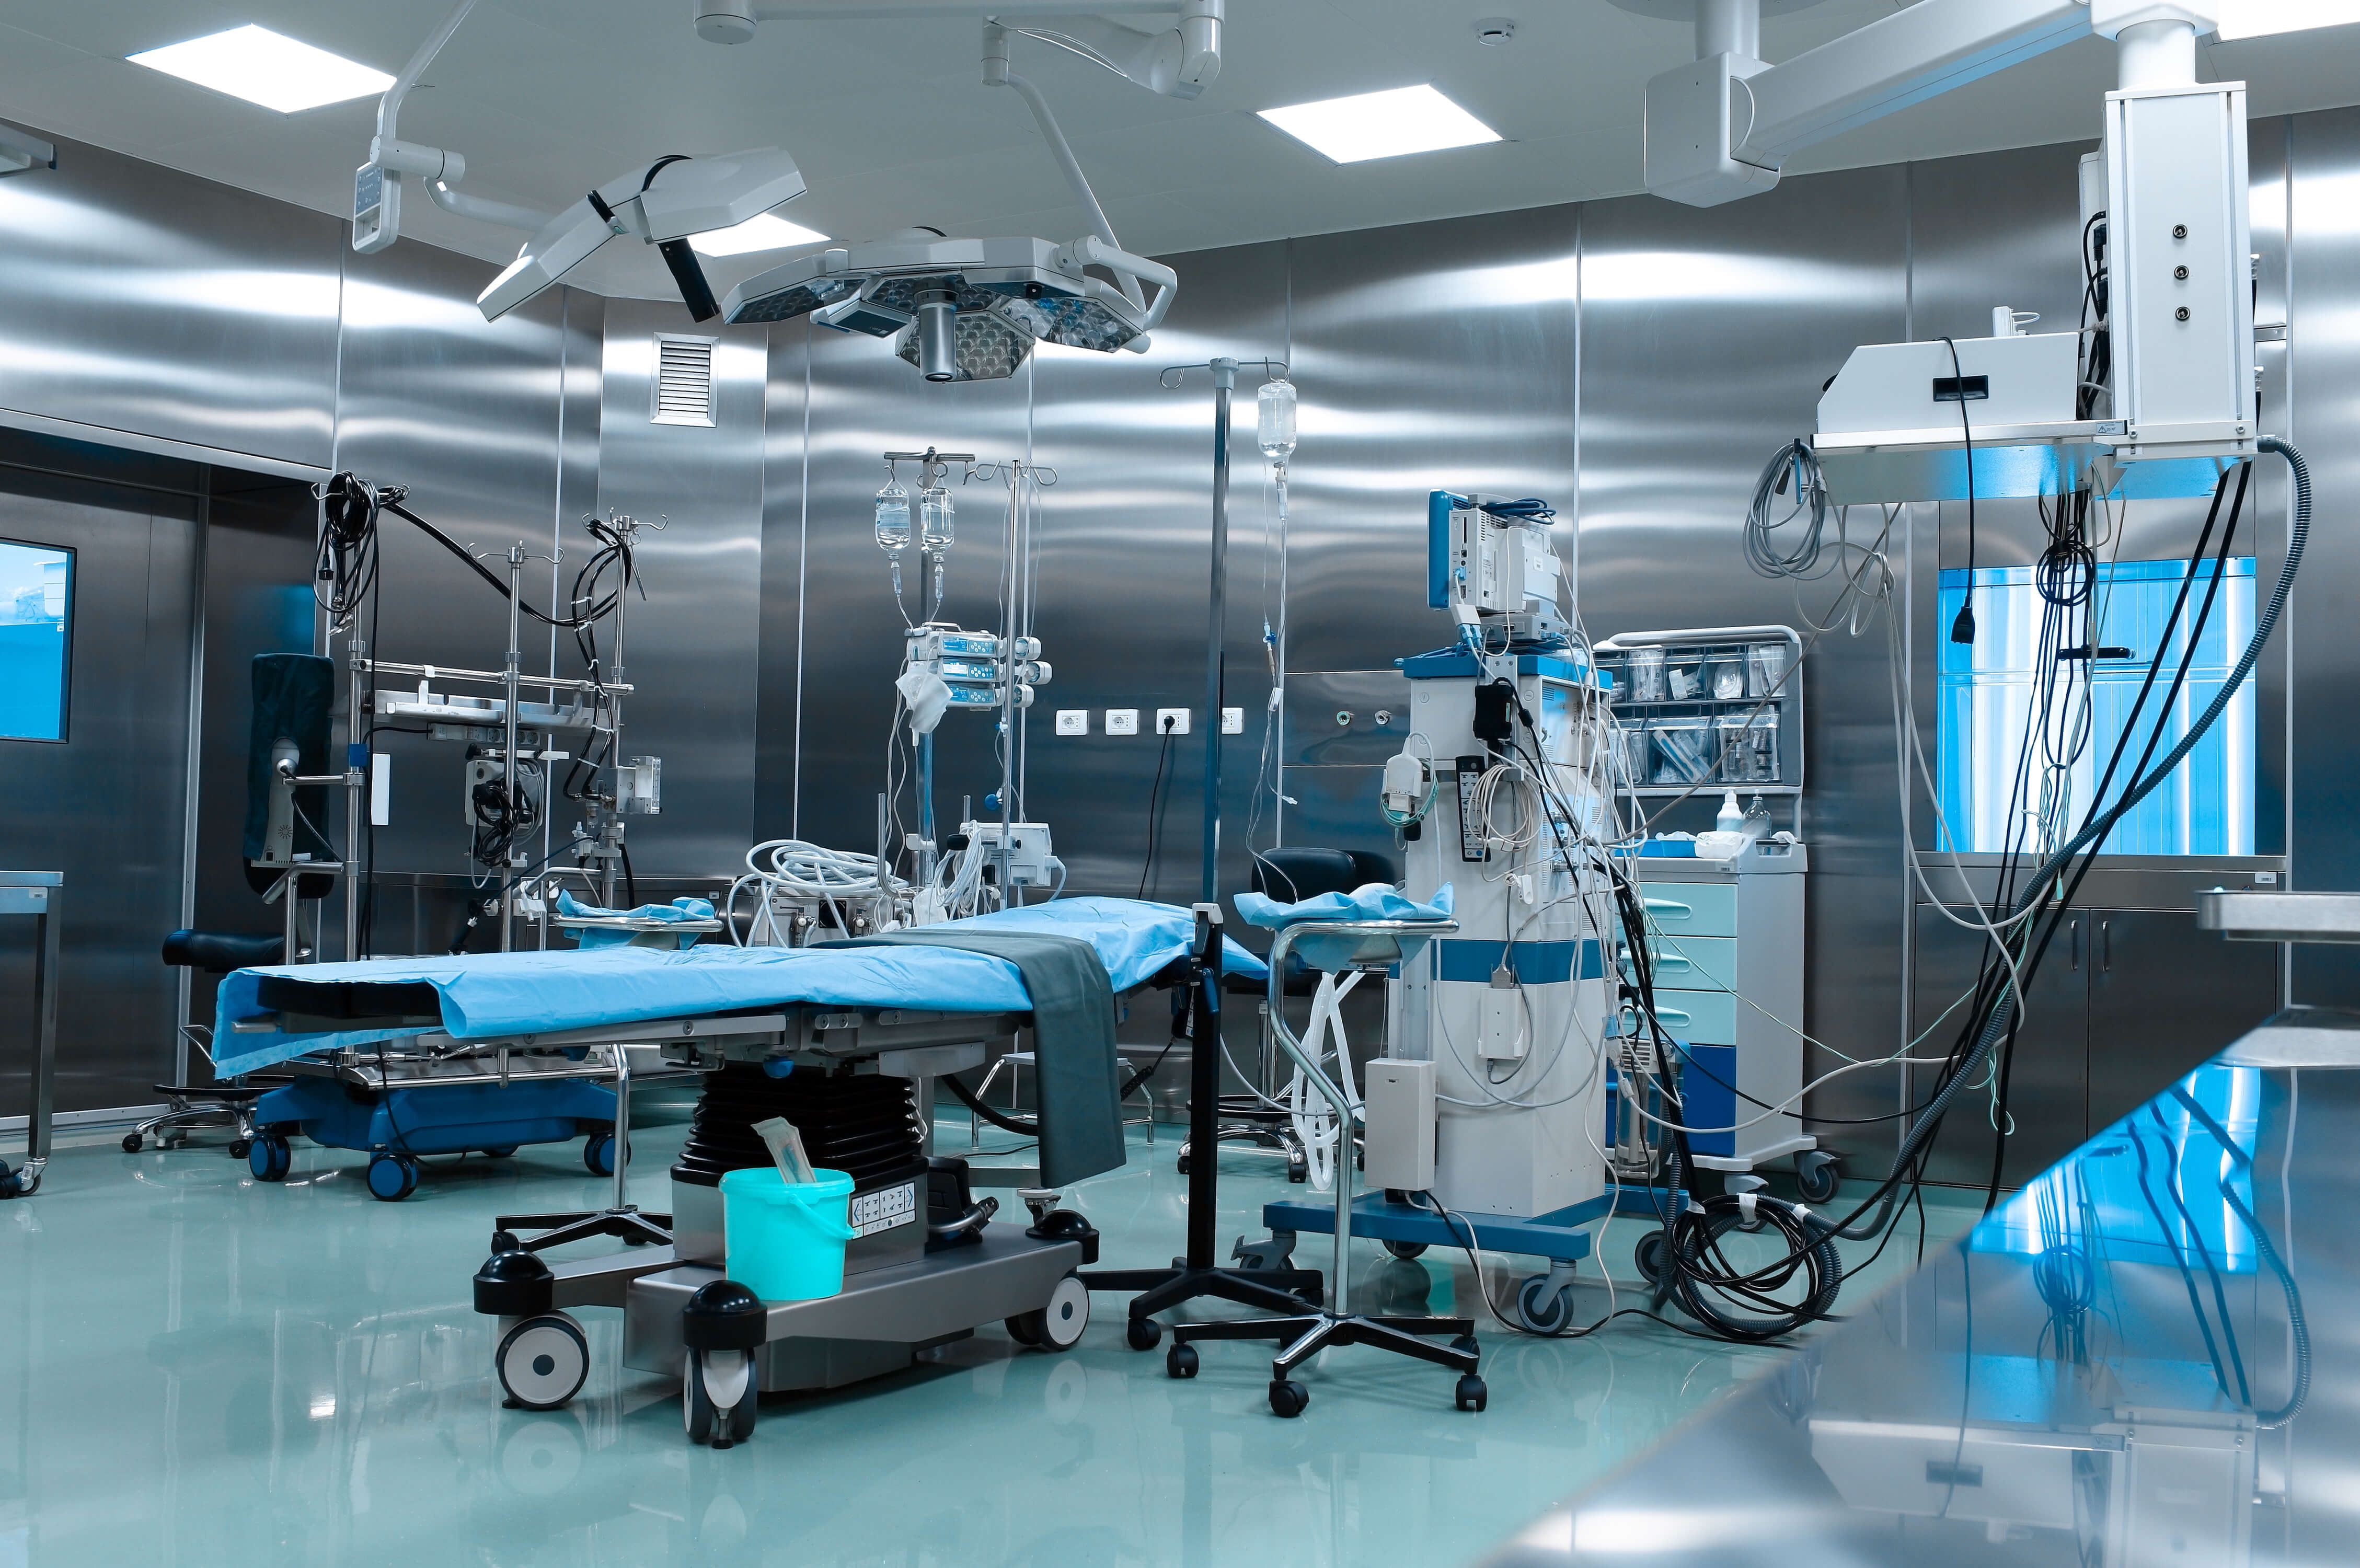 New EU Medical Device Regulations - What's The Impact?